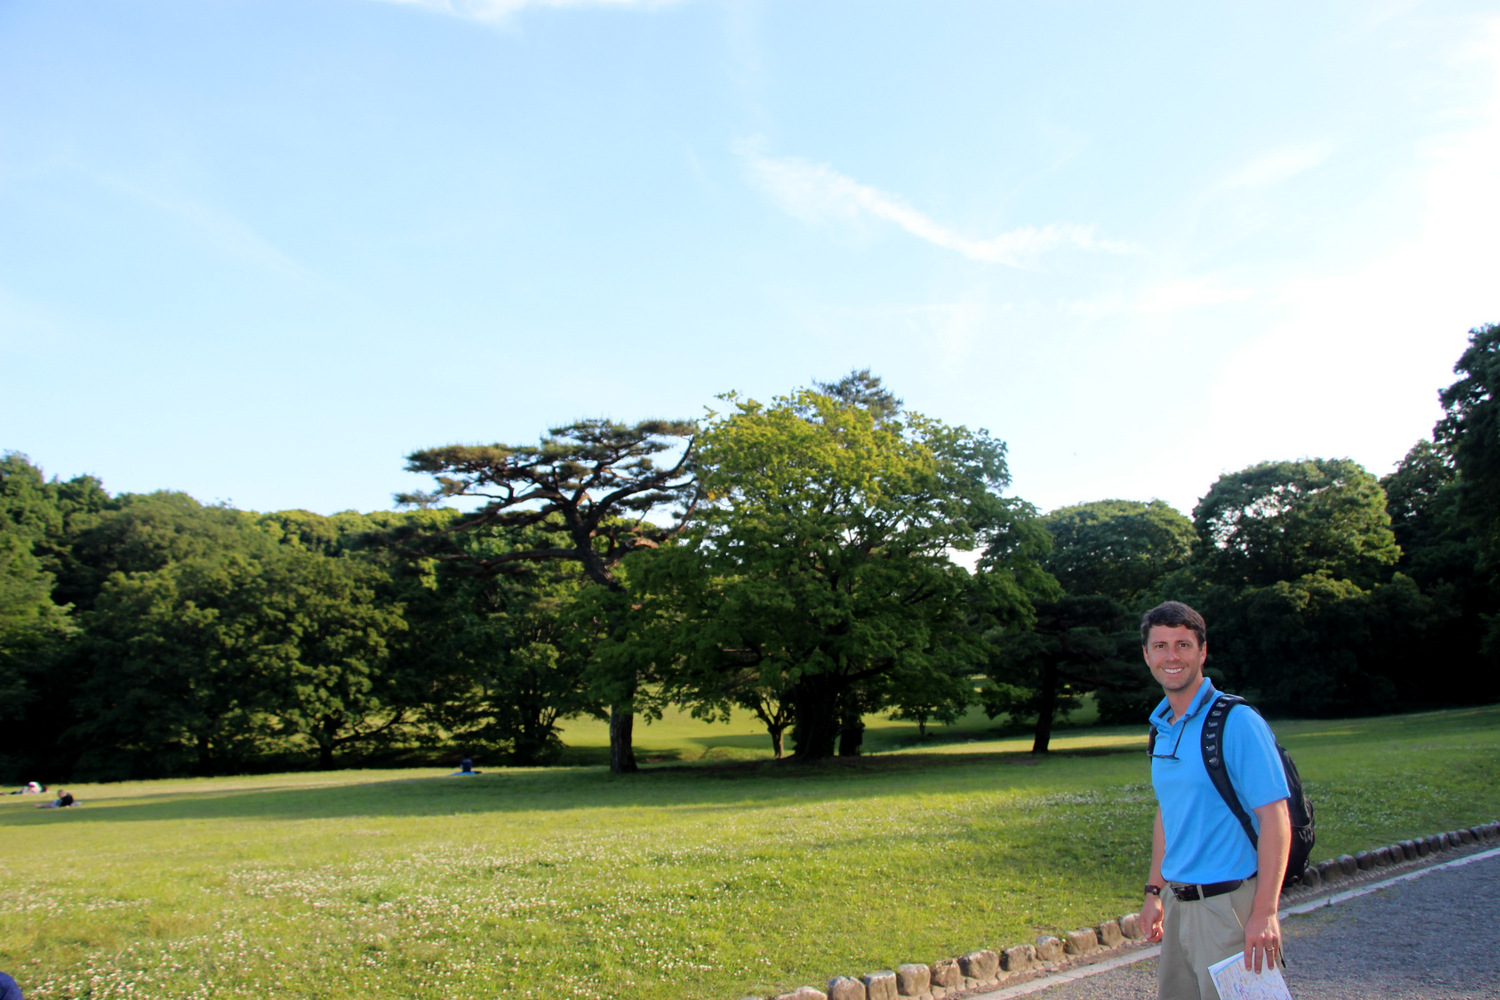 Meiji Shrine Park